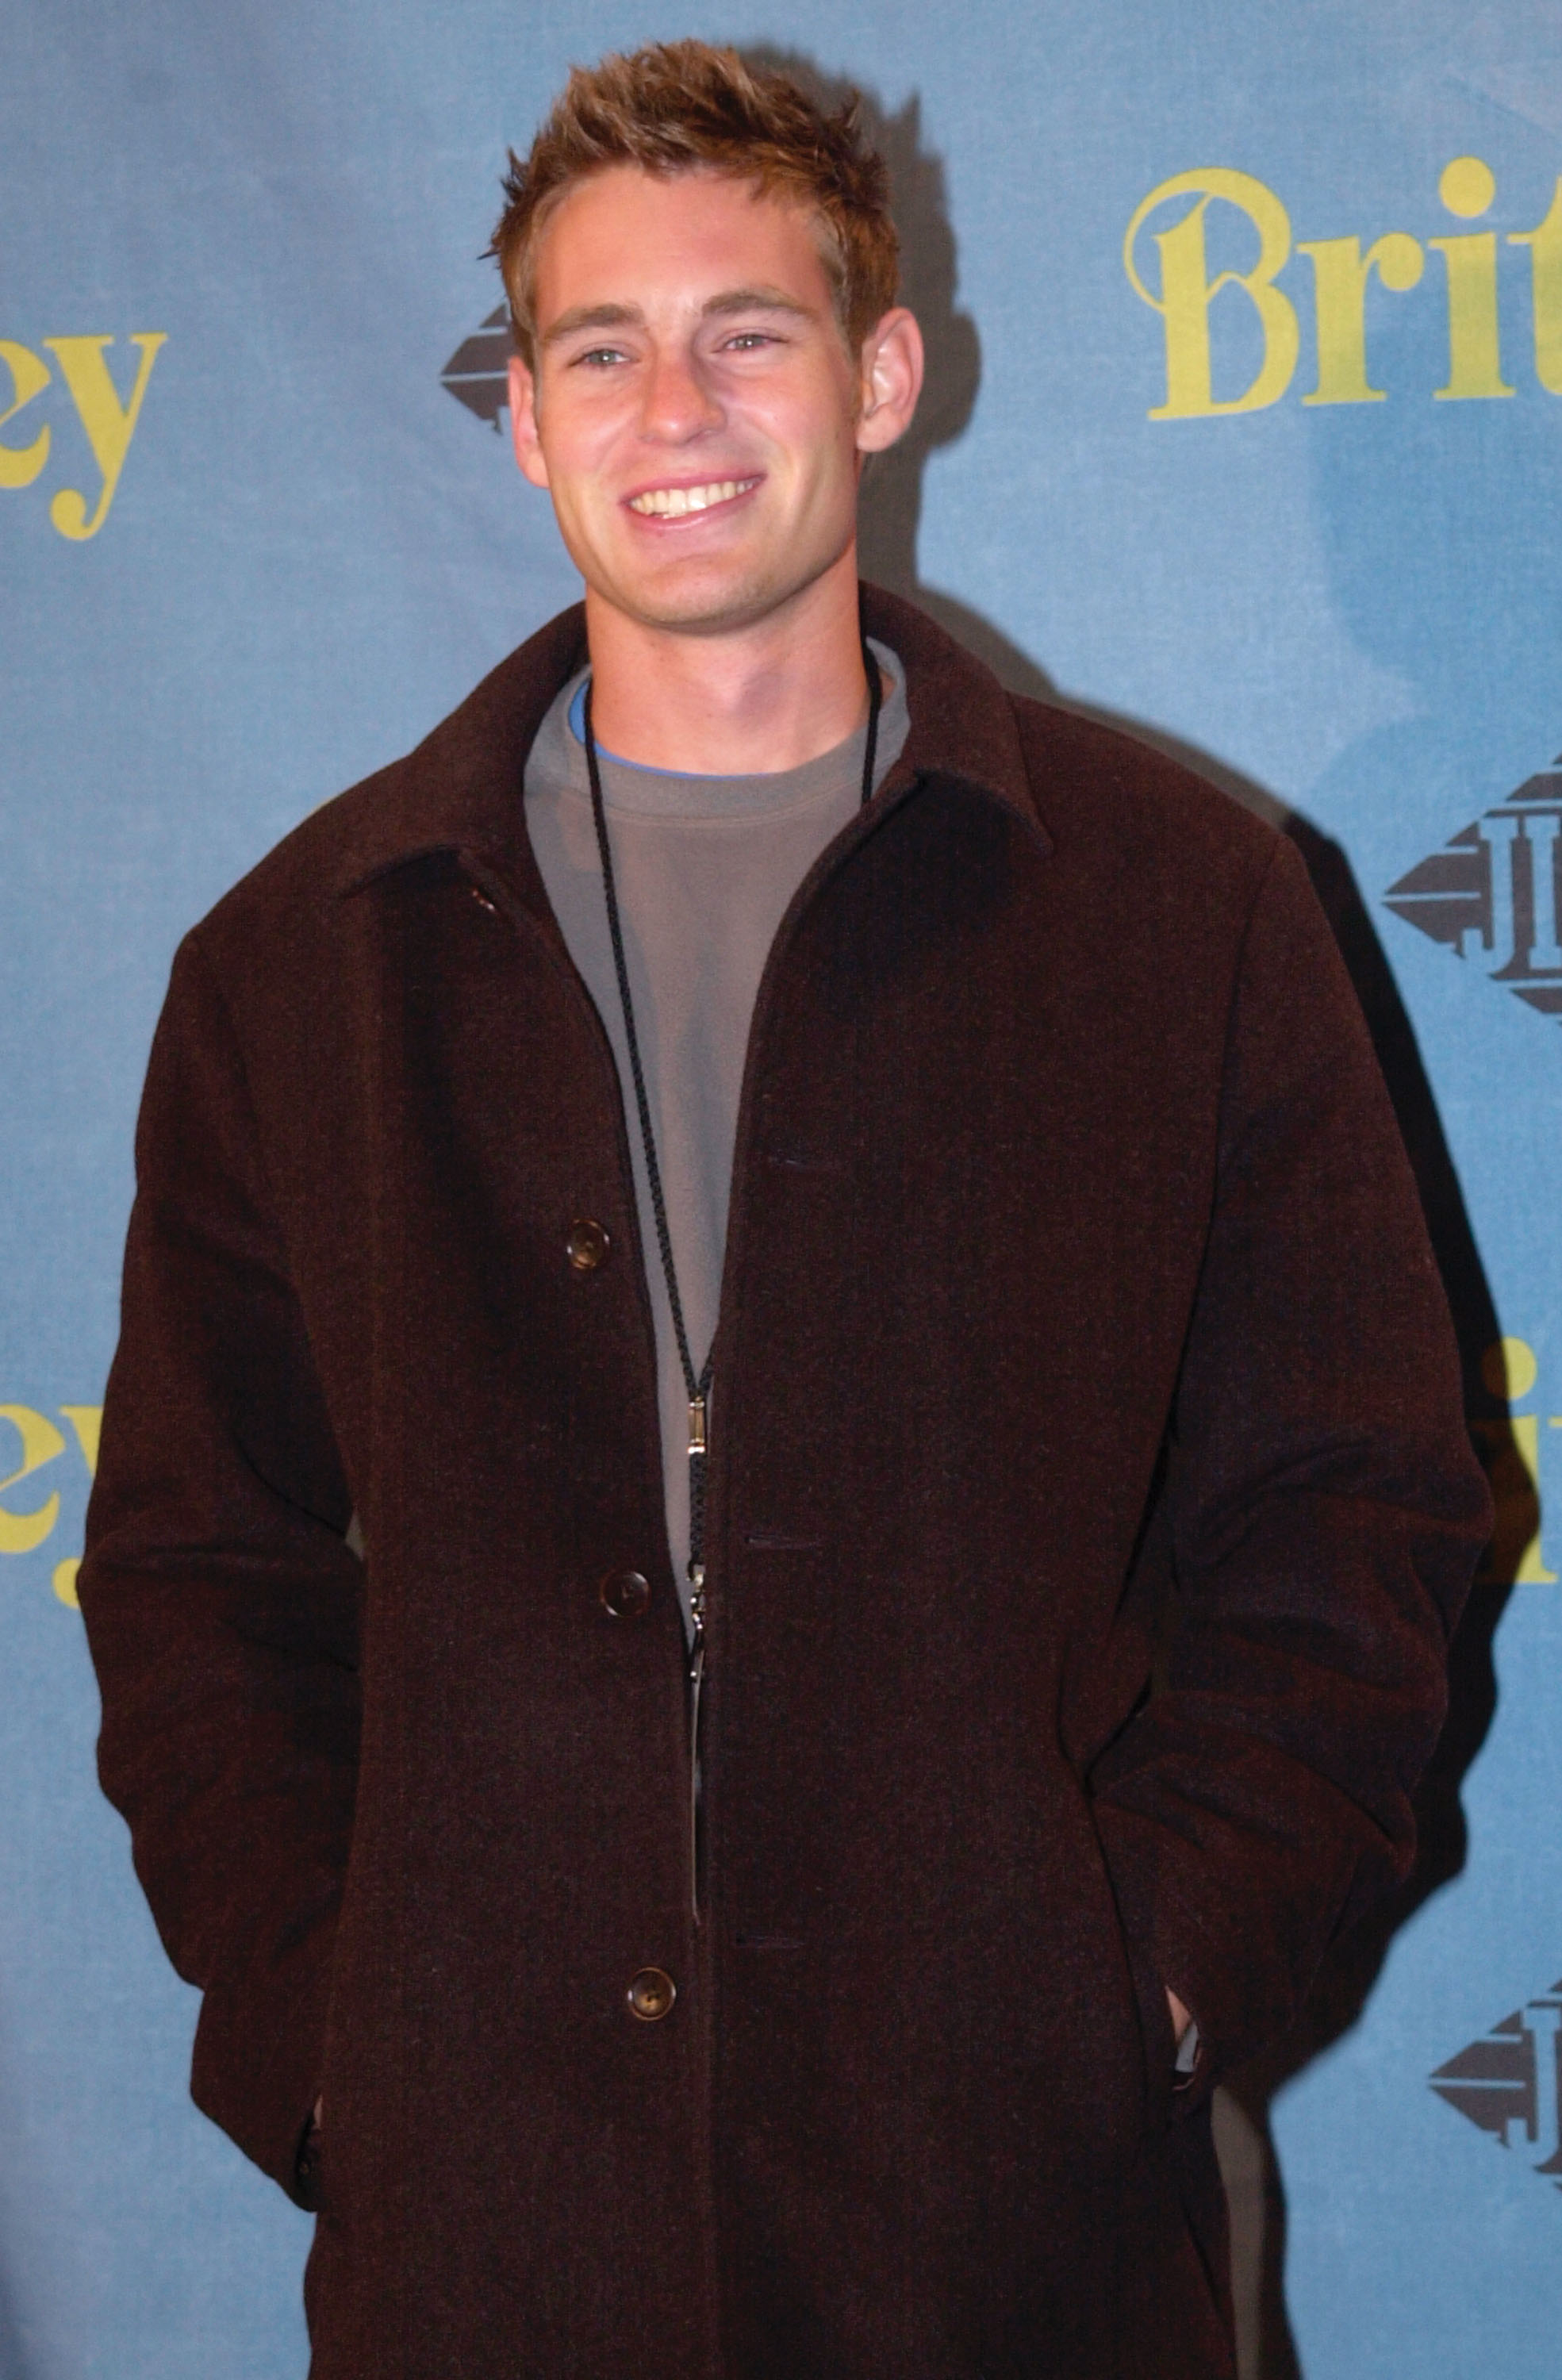 MTV Real World star Danny Roberts attends the release party for Britney Spears'' new album 'Britney' November 6, 2001 in New York. (Photo by Lawrence Lucier/Getty Images)